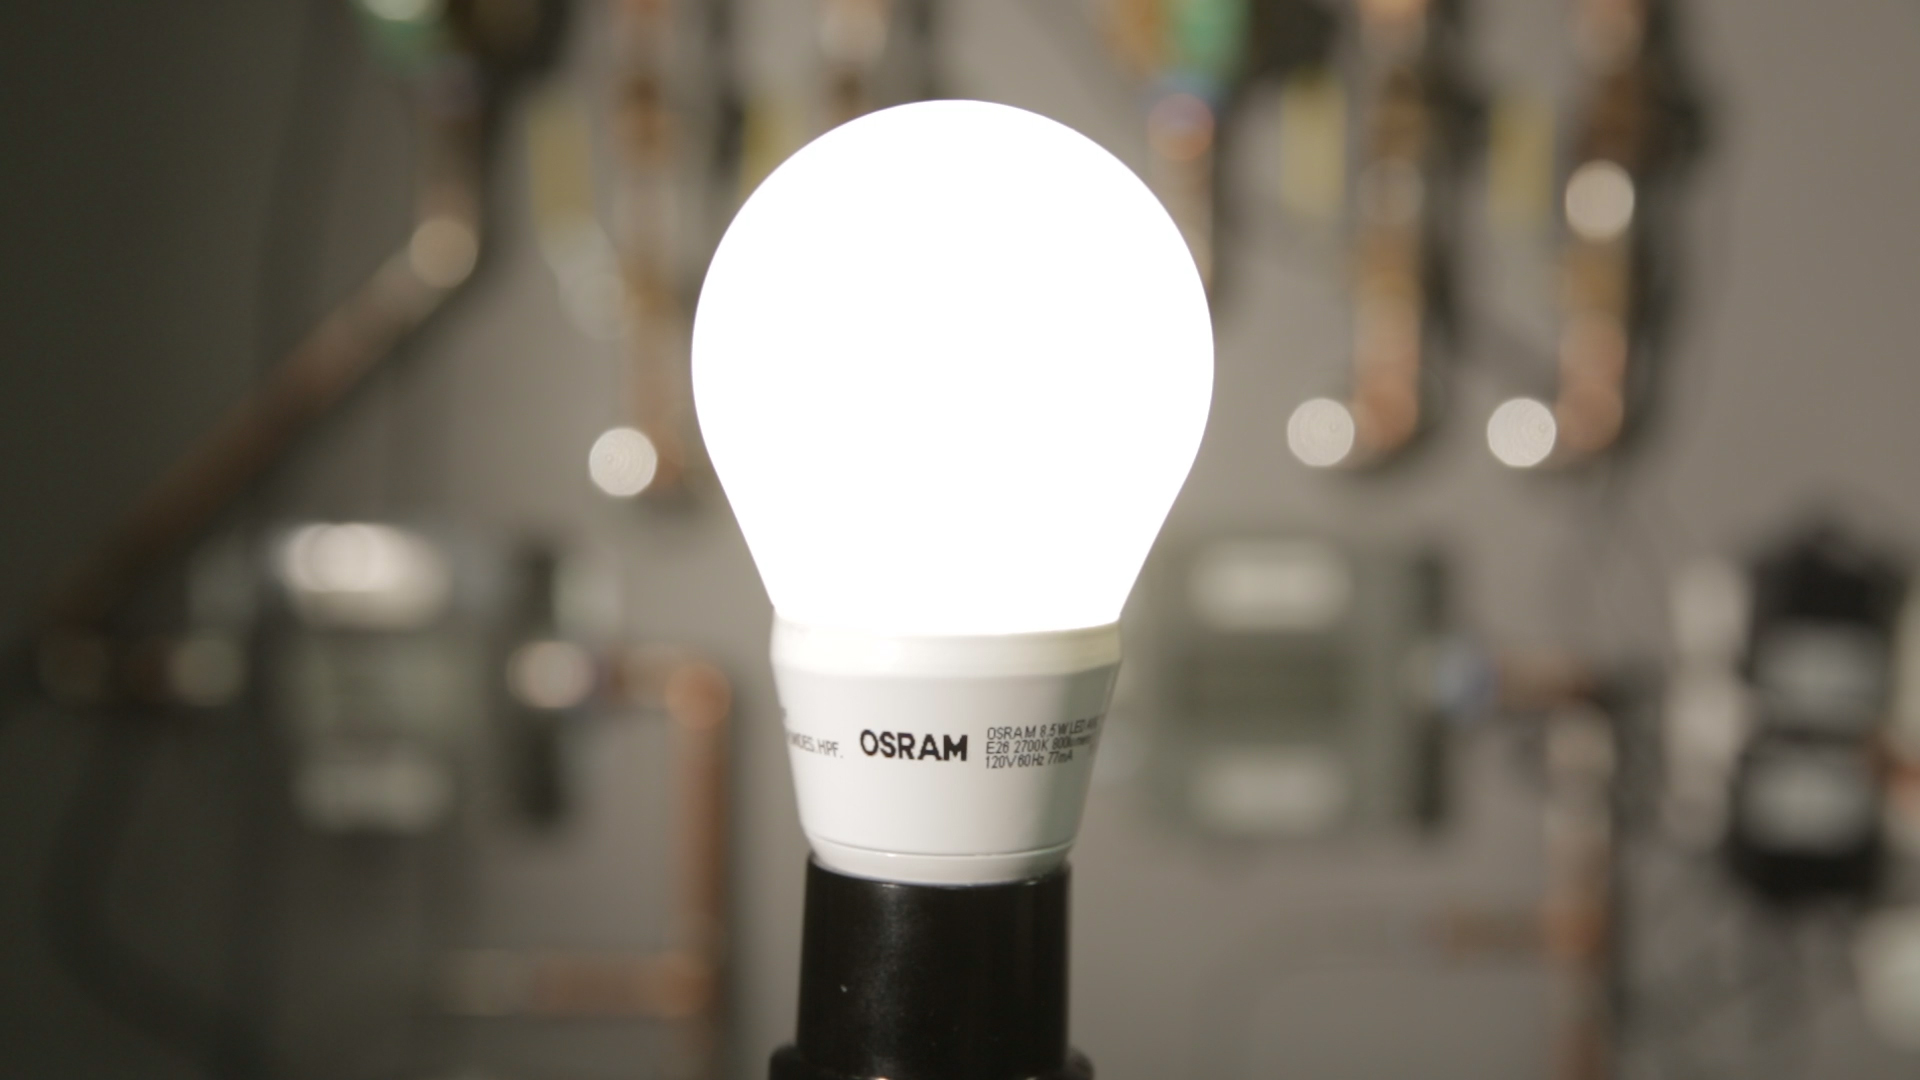 Video: Solid across-the-board performance from the Osram 60W Replacement Ultra LED